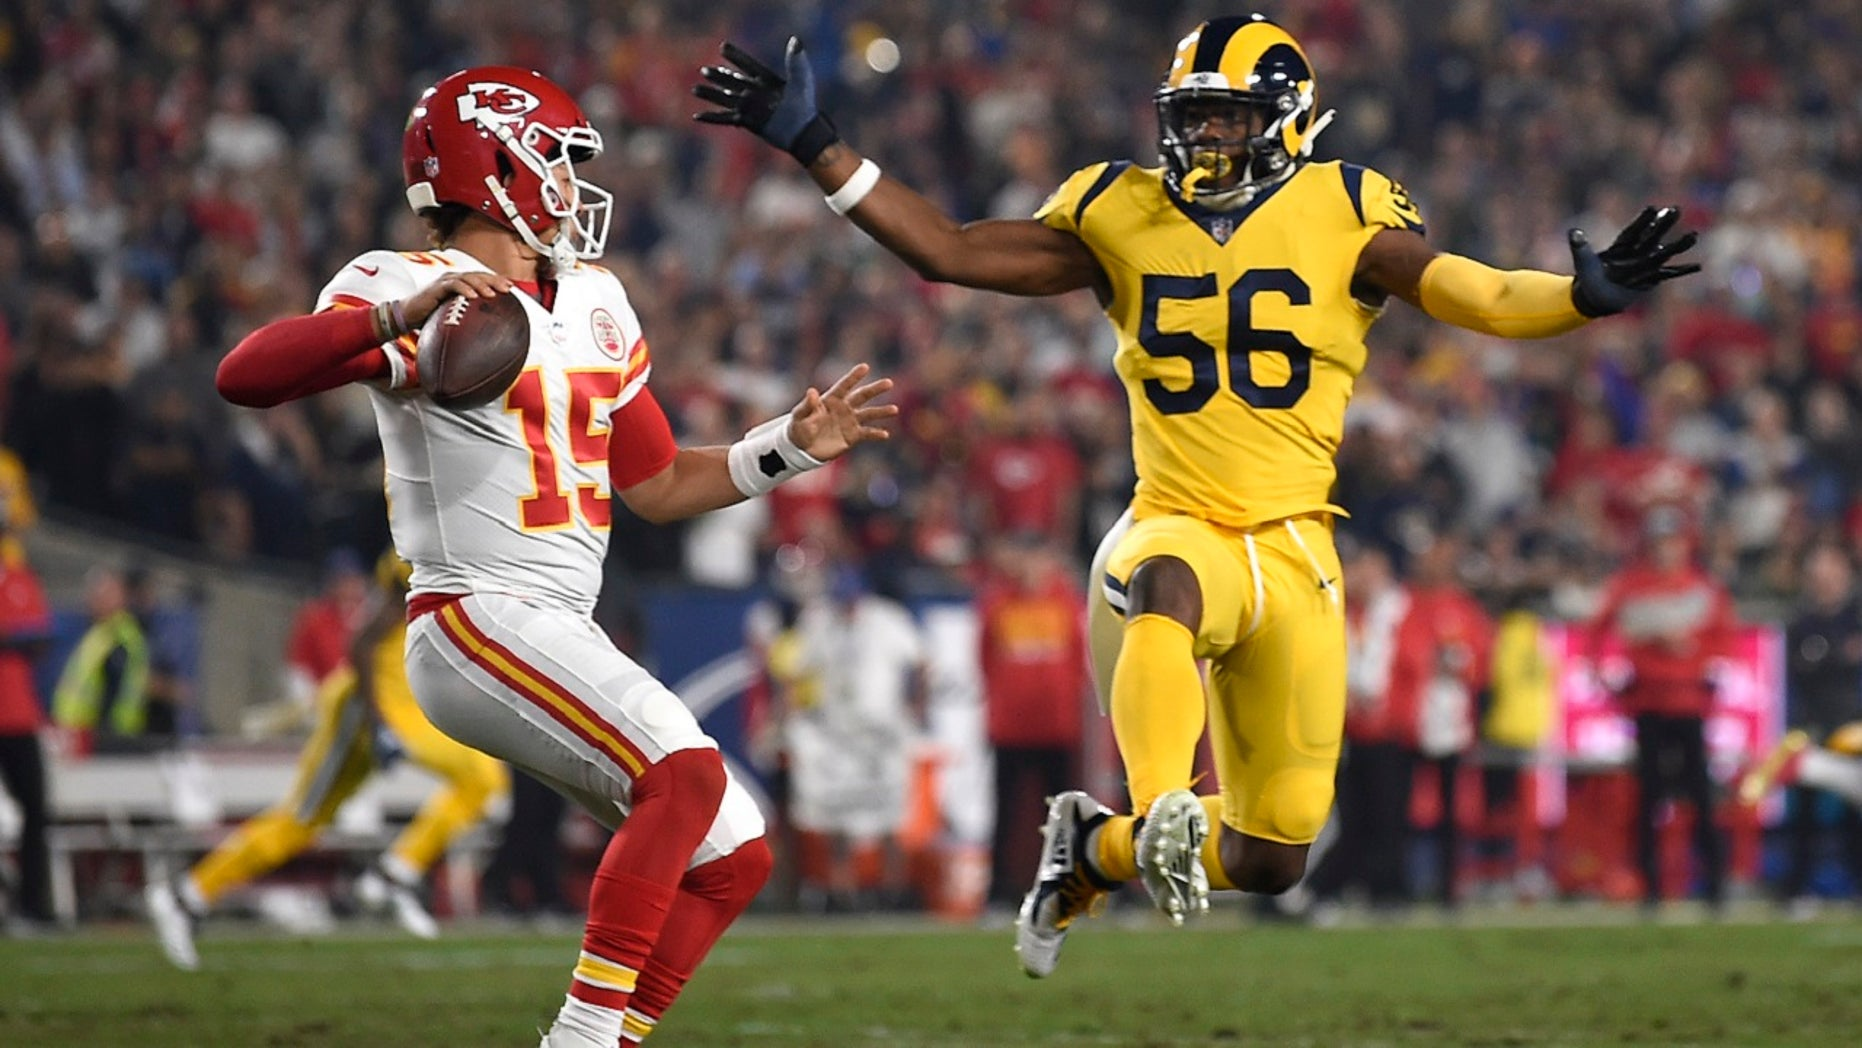 Kansas City Chiefs quarterback Patrick Mahomes, left, passes under pressure from Los Angeles Rams defensive end Dante Fowler (56) during the first half of an NFL football game Monday, Nov. 19, 2018, in Los Angeles.